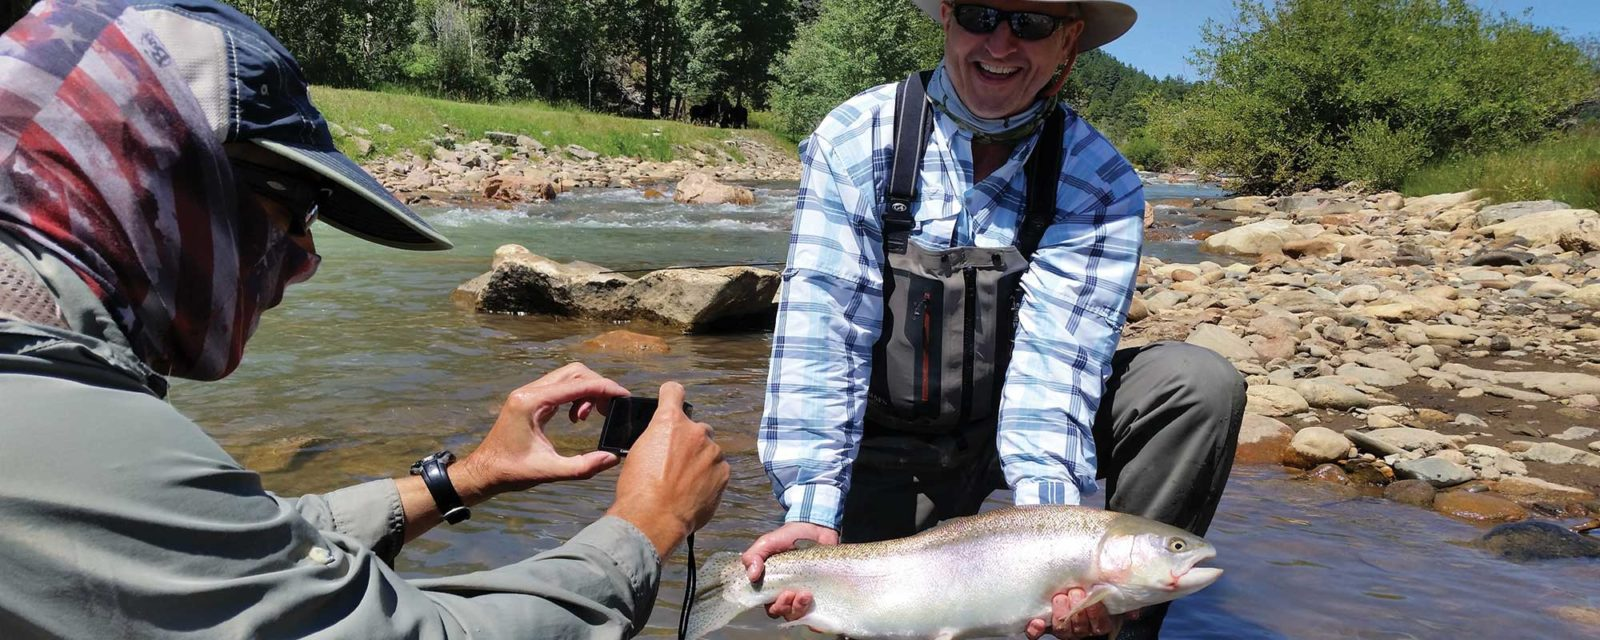 One man taking a picture of another man who is holding a trophy sized trout along the banks of the North Fork of the South Platte, near Bailey.